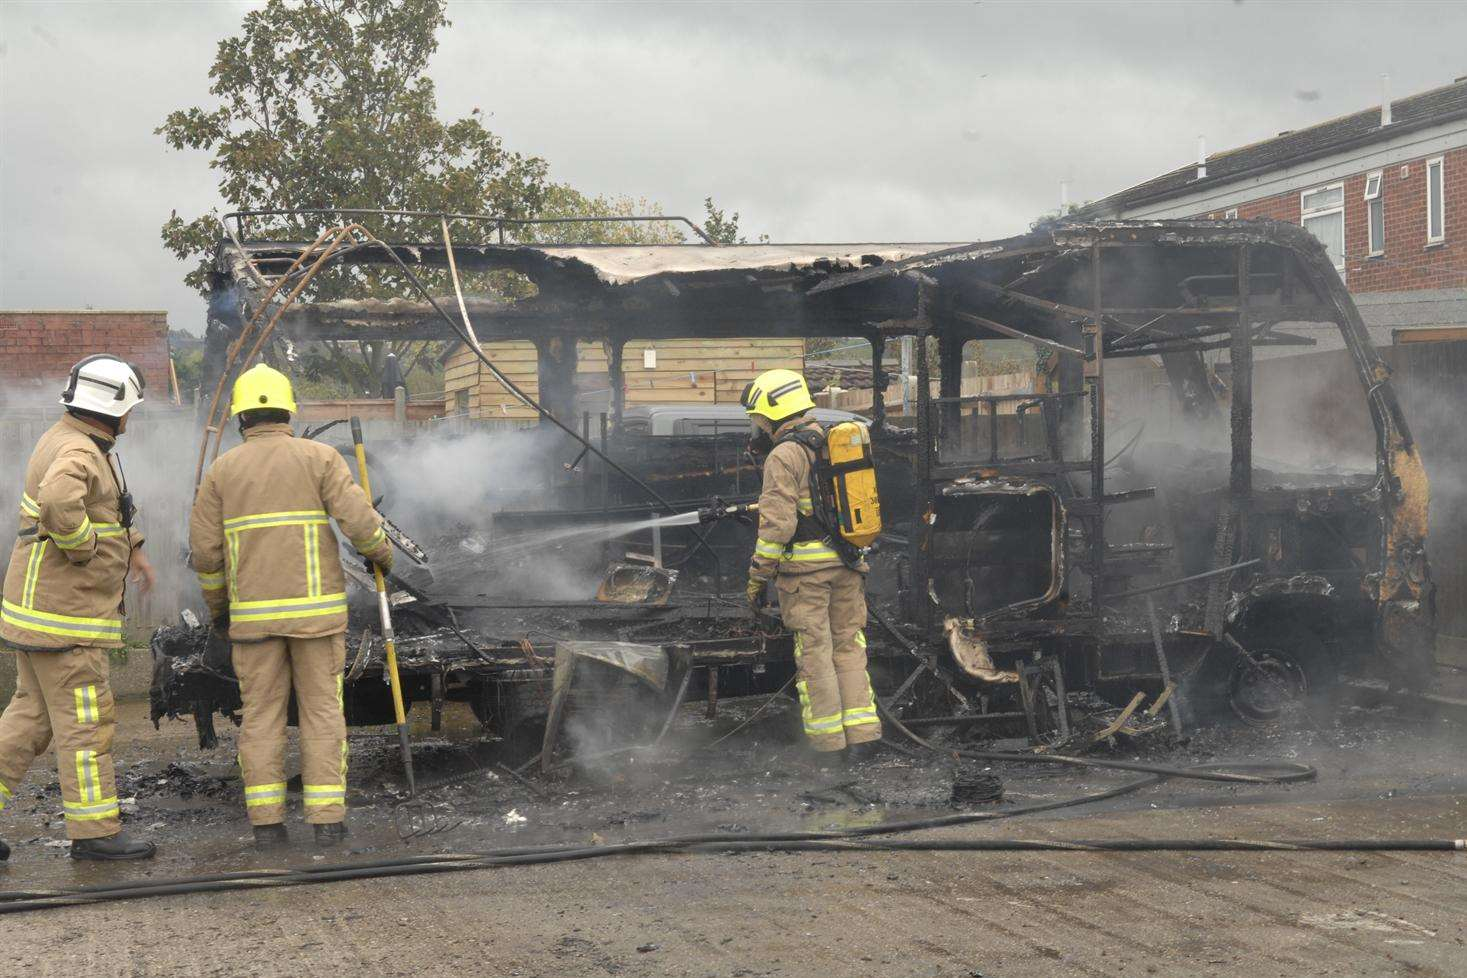 The campervan caught fire with the owner still inside